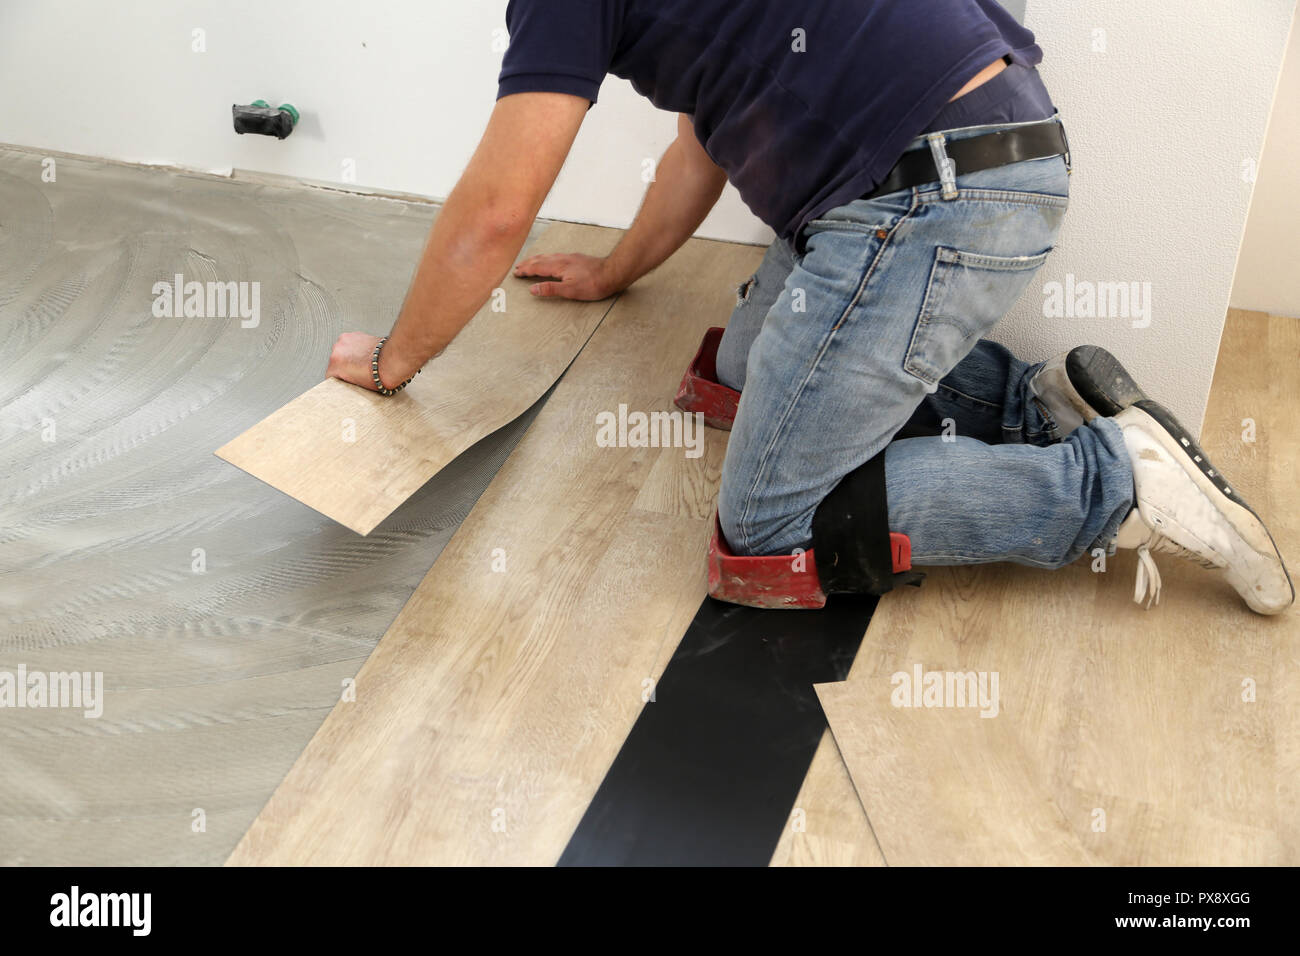 Installing Vinyl Tile Worker Installing New Vinyl Tile Floor Stock Photo 222701936 Alamy